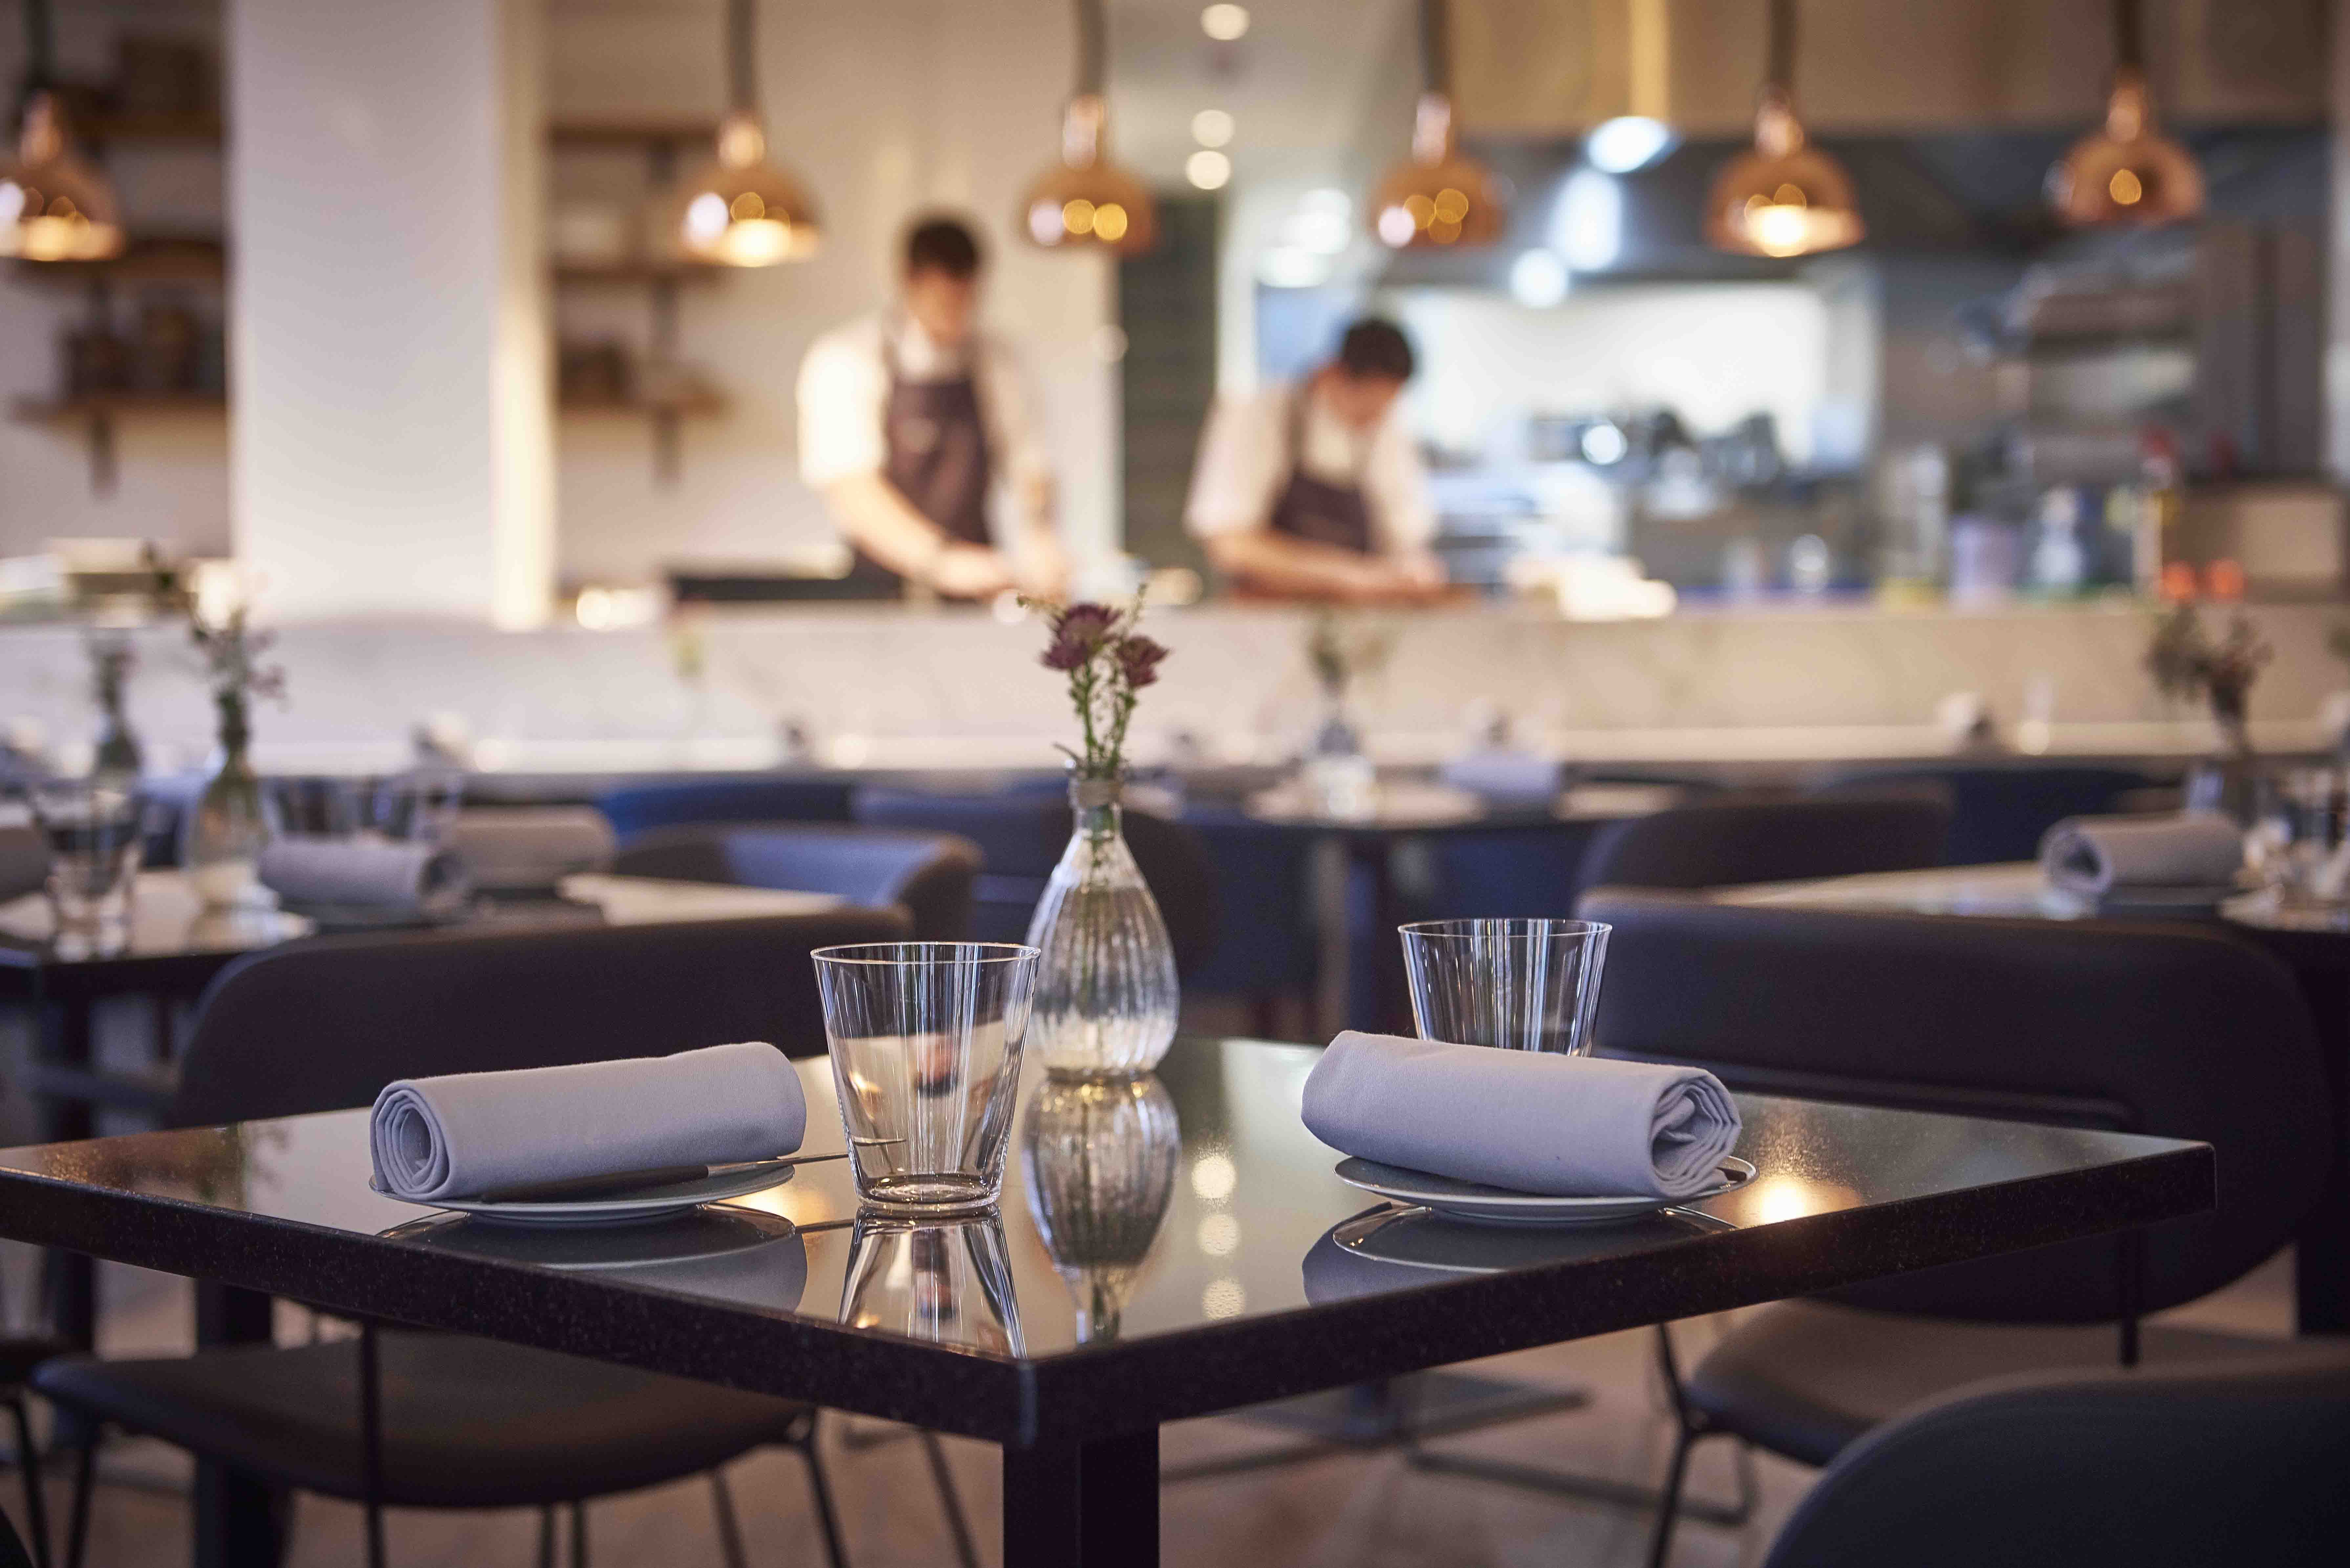 Table set at Frog by Adam Handling with open kitchen in background